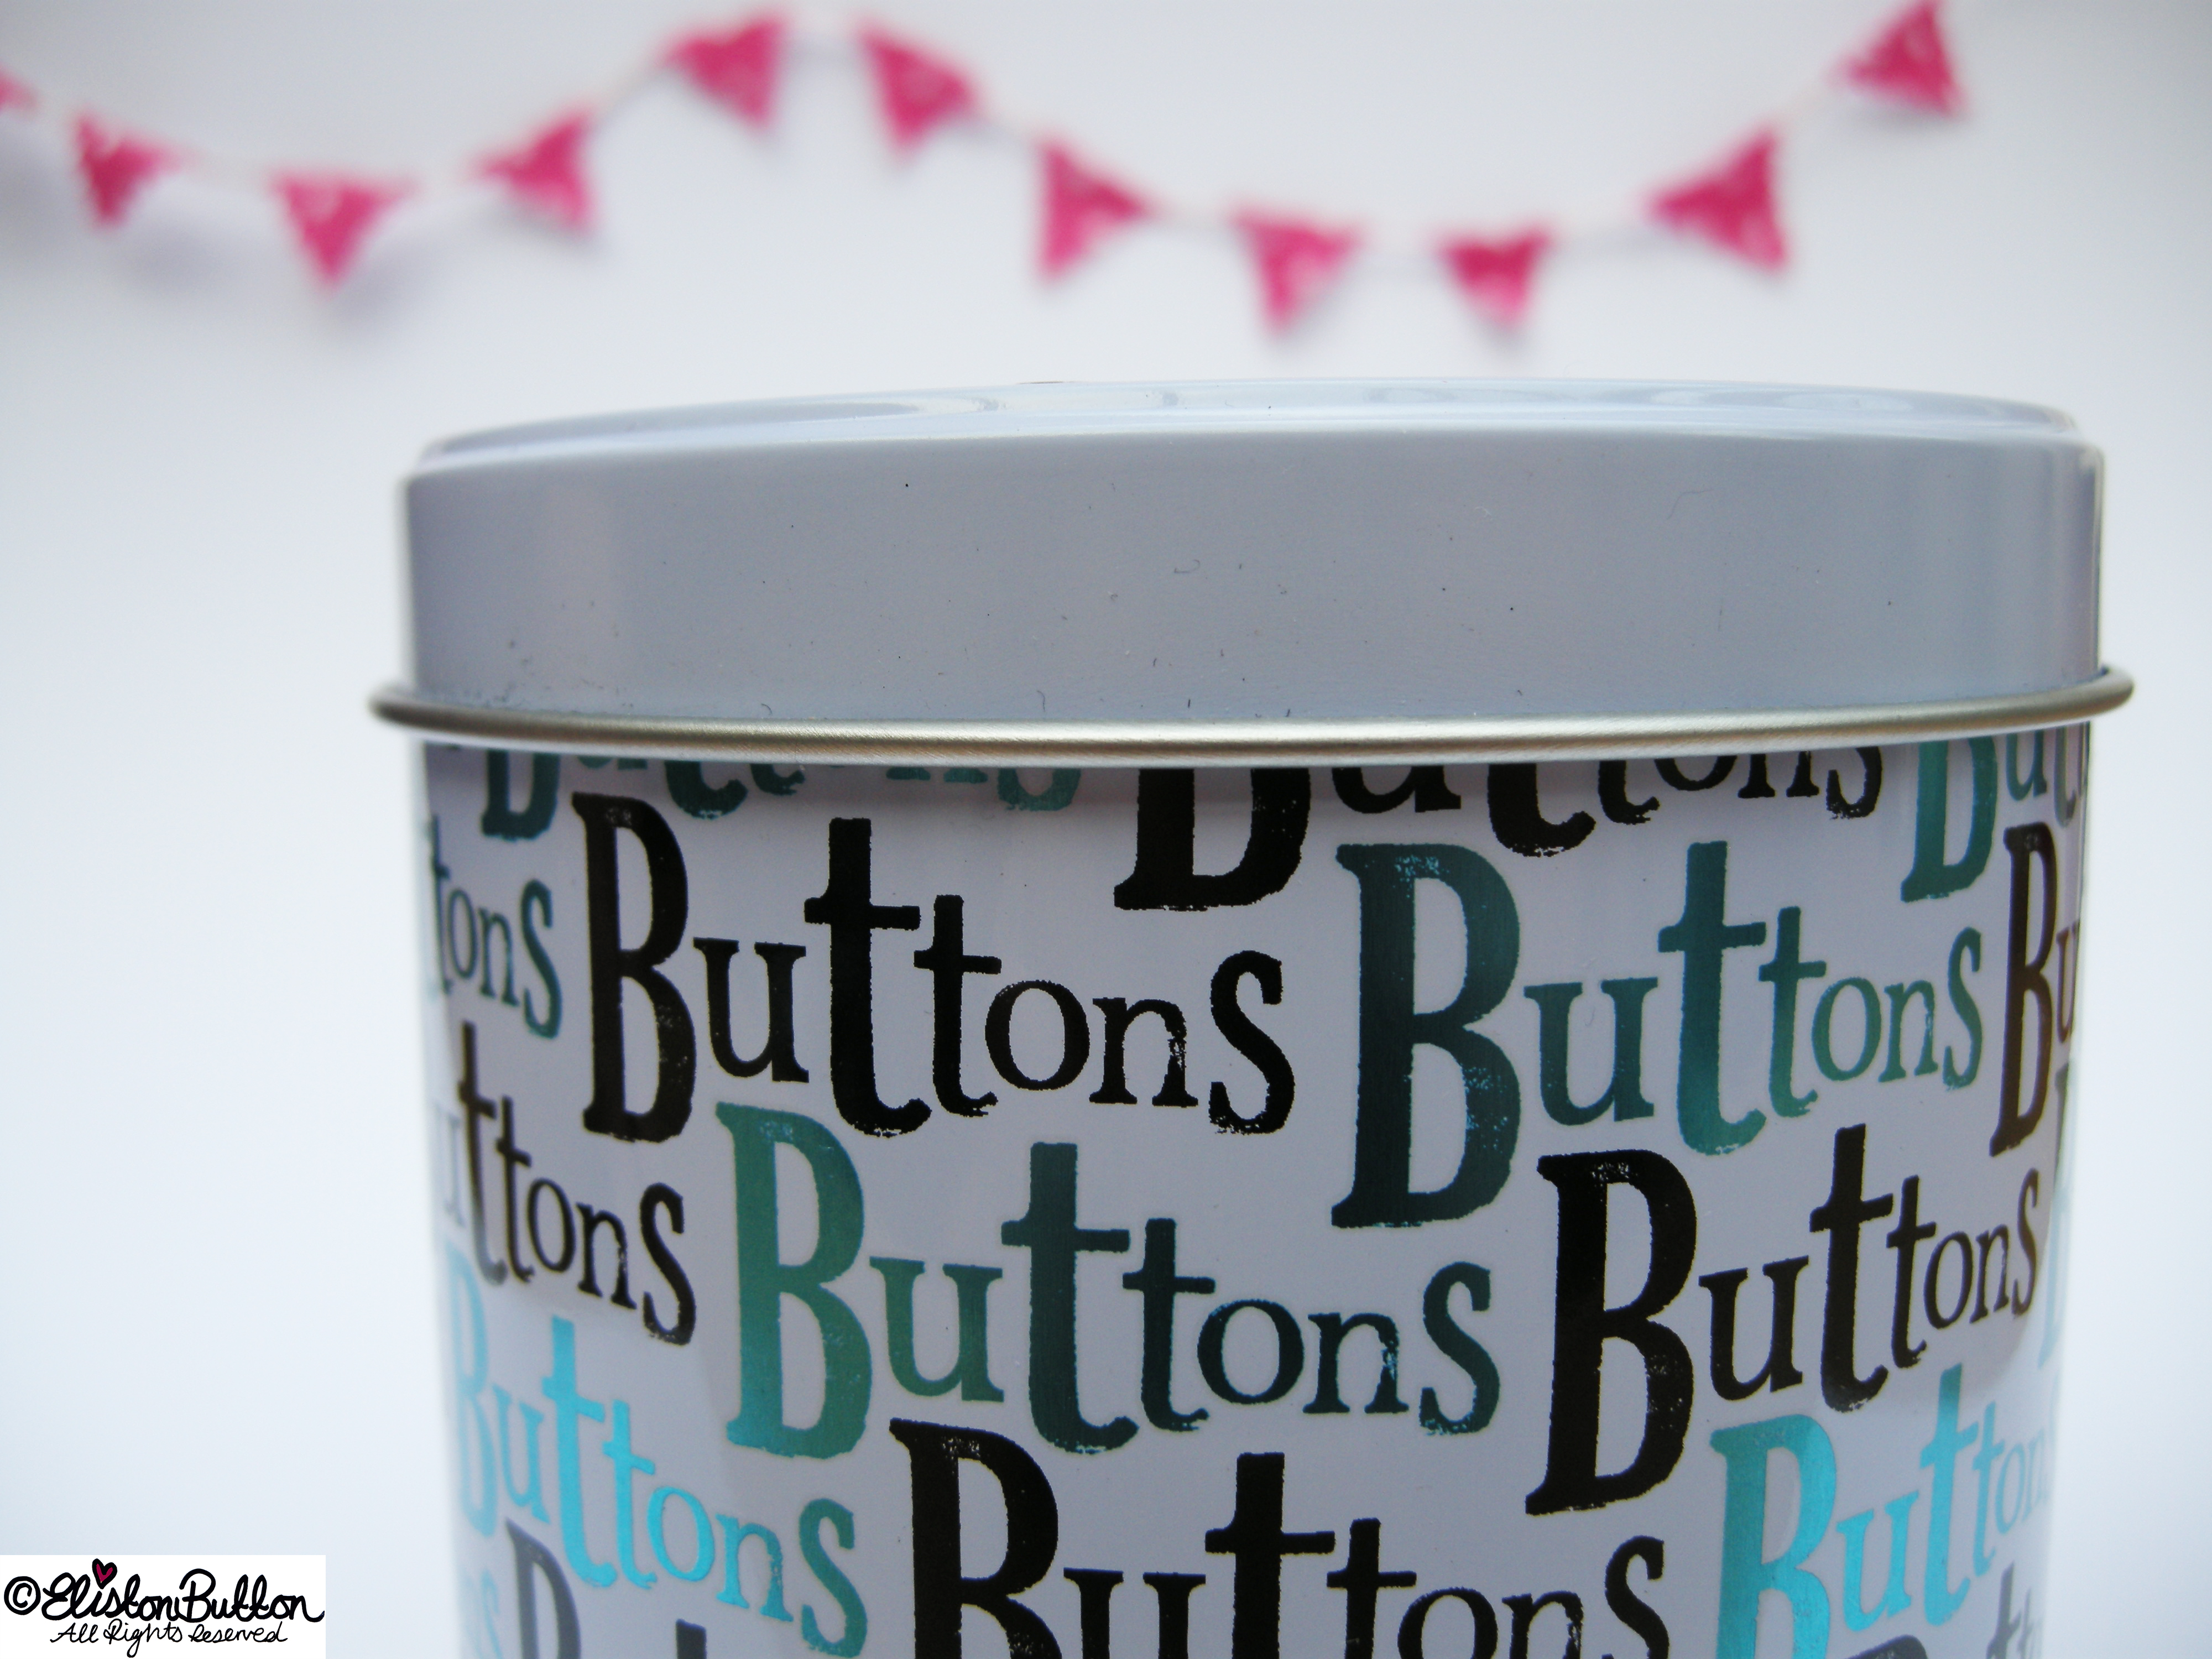 Don't Worry Mr Button I Will Save You Button Tin by The Bright Side Close Up - Don't Worry Mr Button I Will Save You at www.elistonbutton.com - Eliston Button - That Crafty Kid – Art, Design, Craft & Adventure.